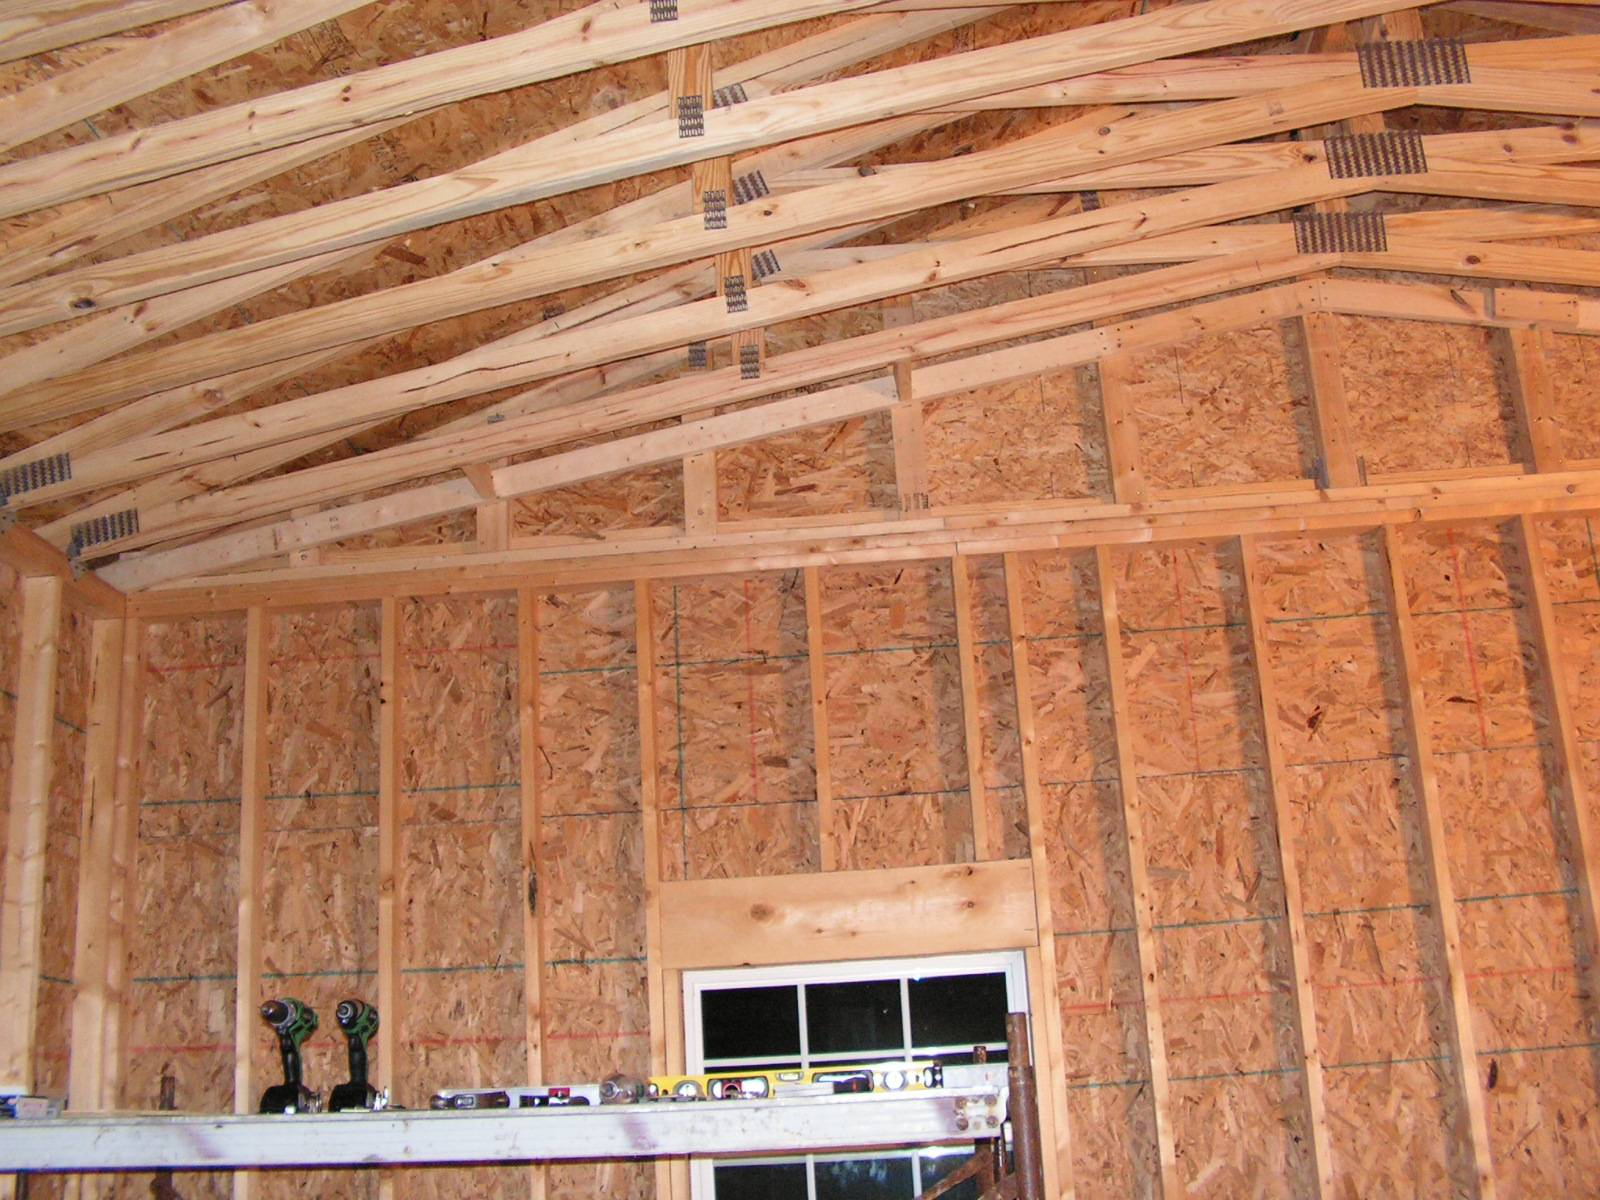 Tying trusses together - The Garage Journal Board